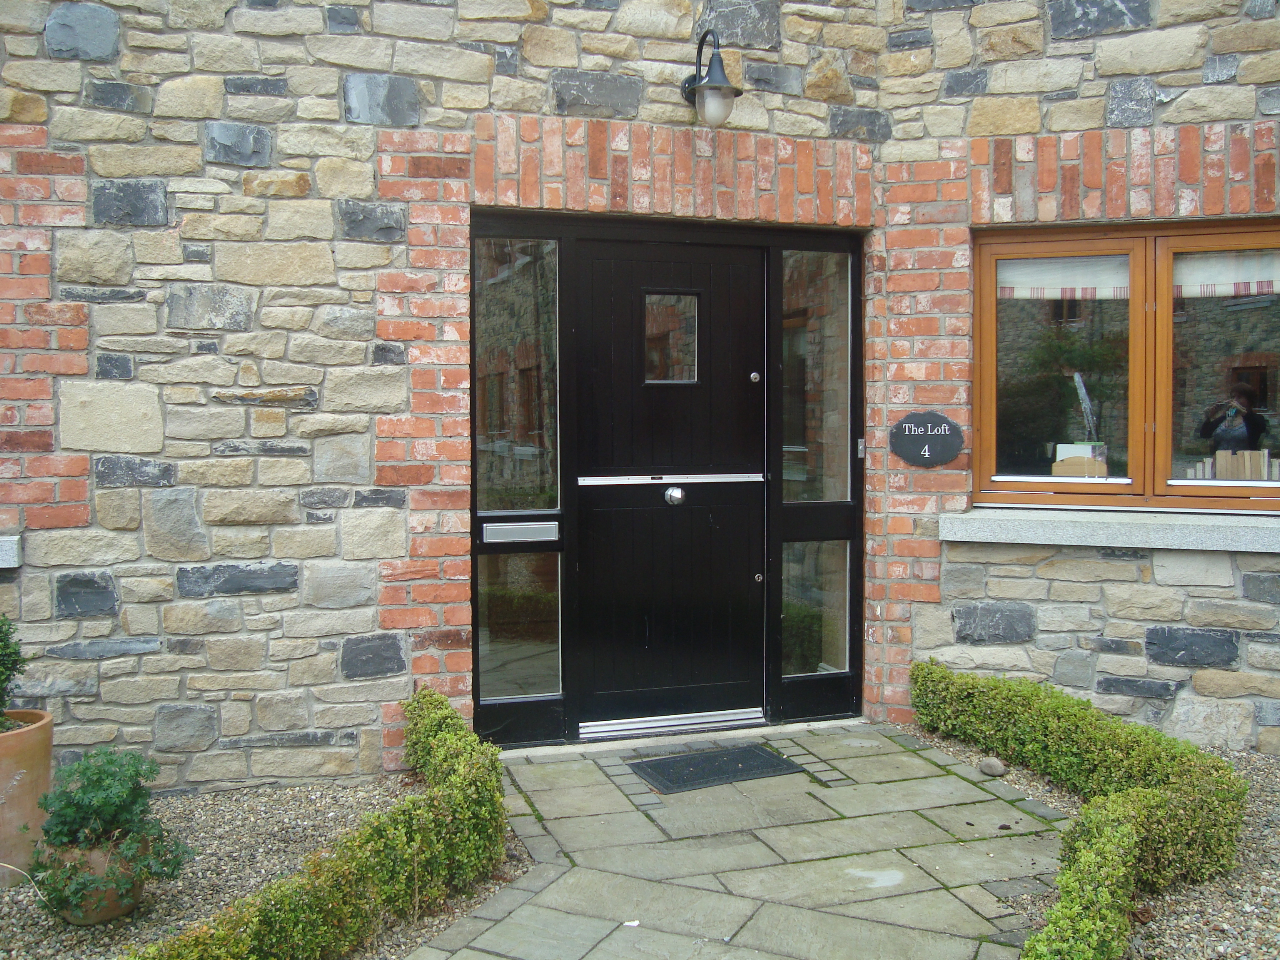 Luxury Self catering accommodation at Decoy Country Cottages, Meath, Ireland